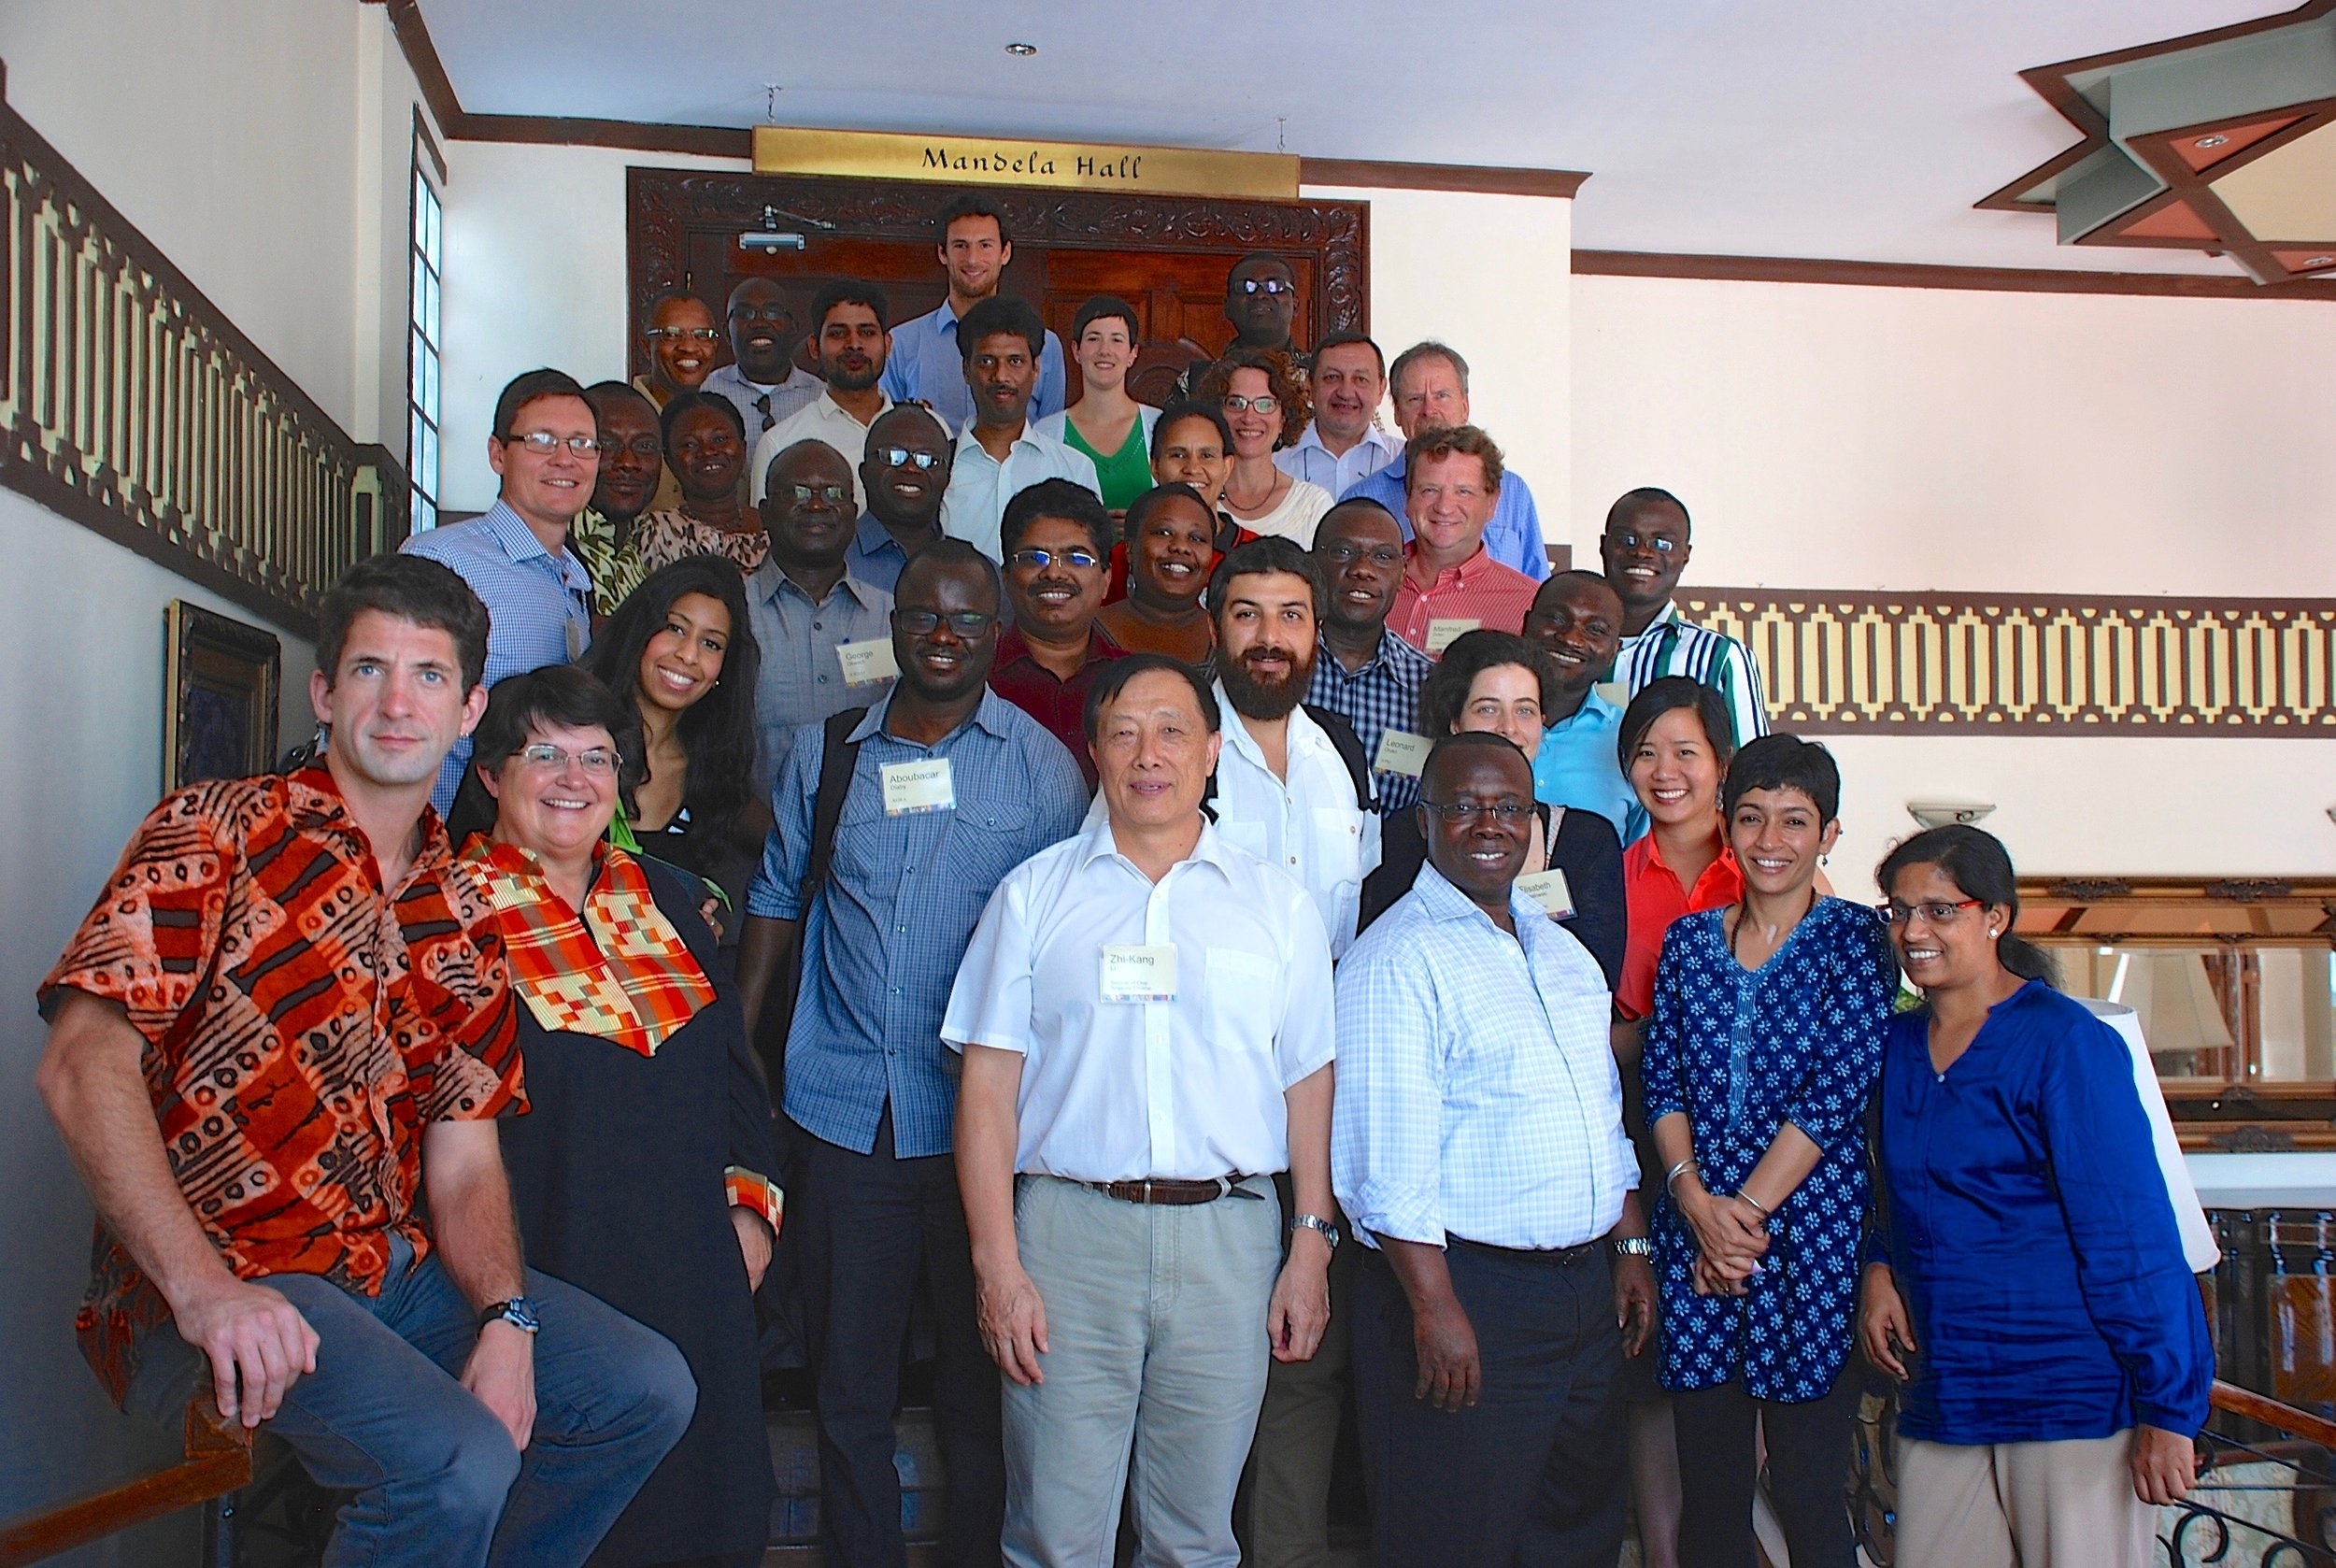 Bill & Melinda Gates Foundation convening facilitated by Schonfield Consulting in Tanzania.